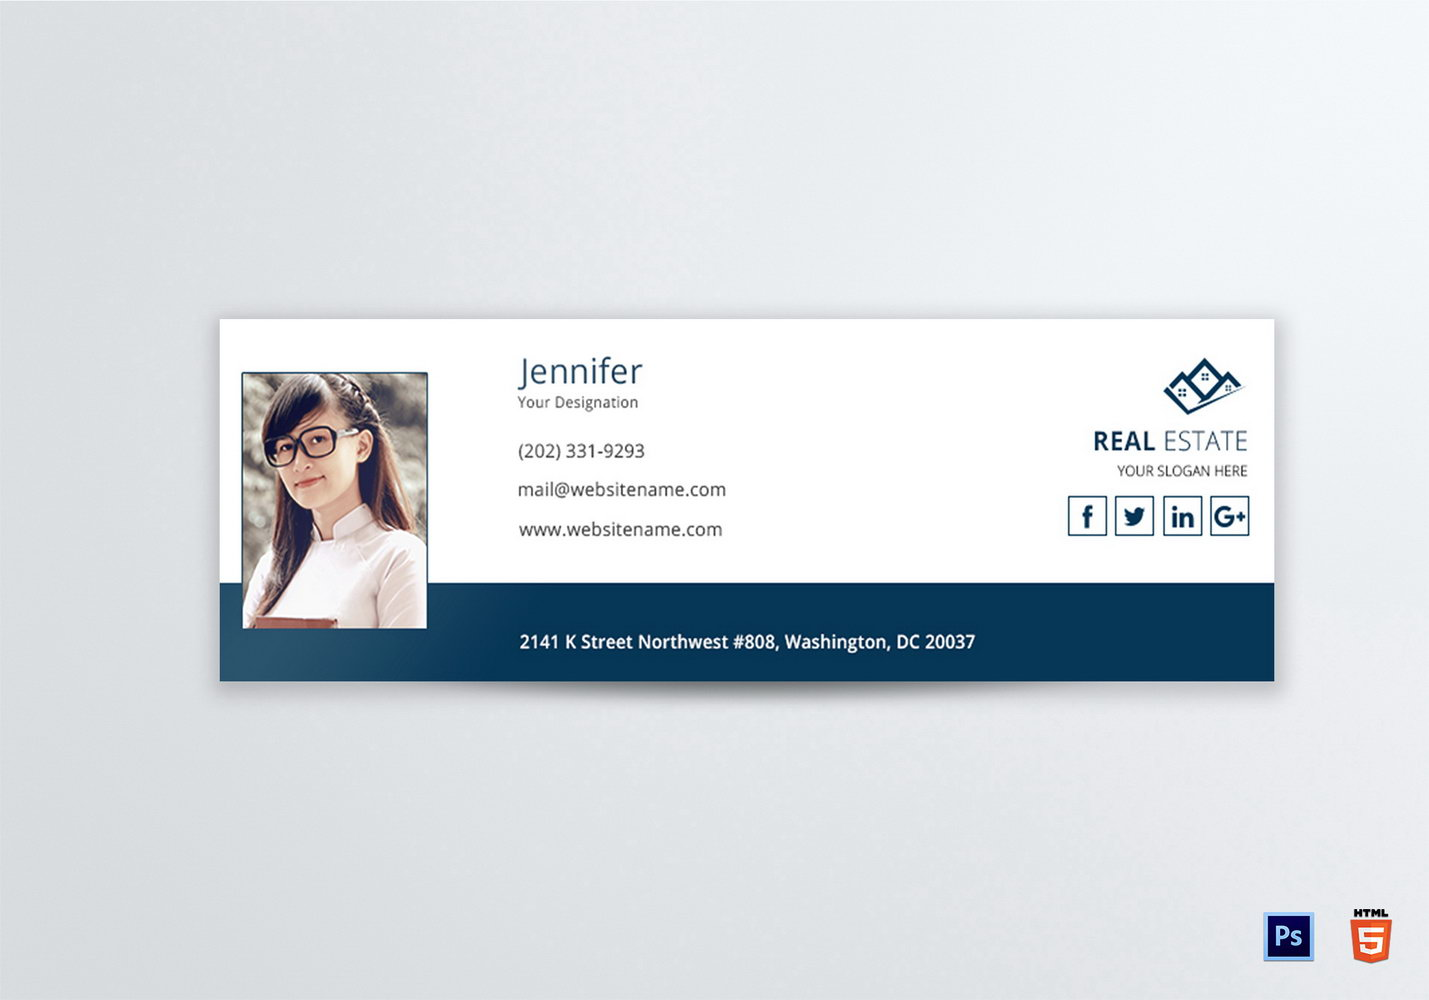 Html Email Signature Template Github